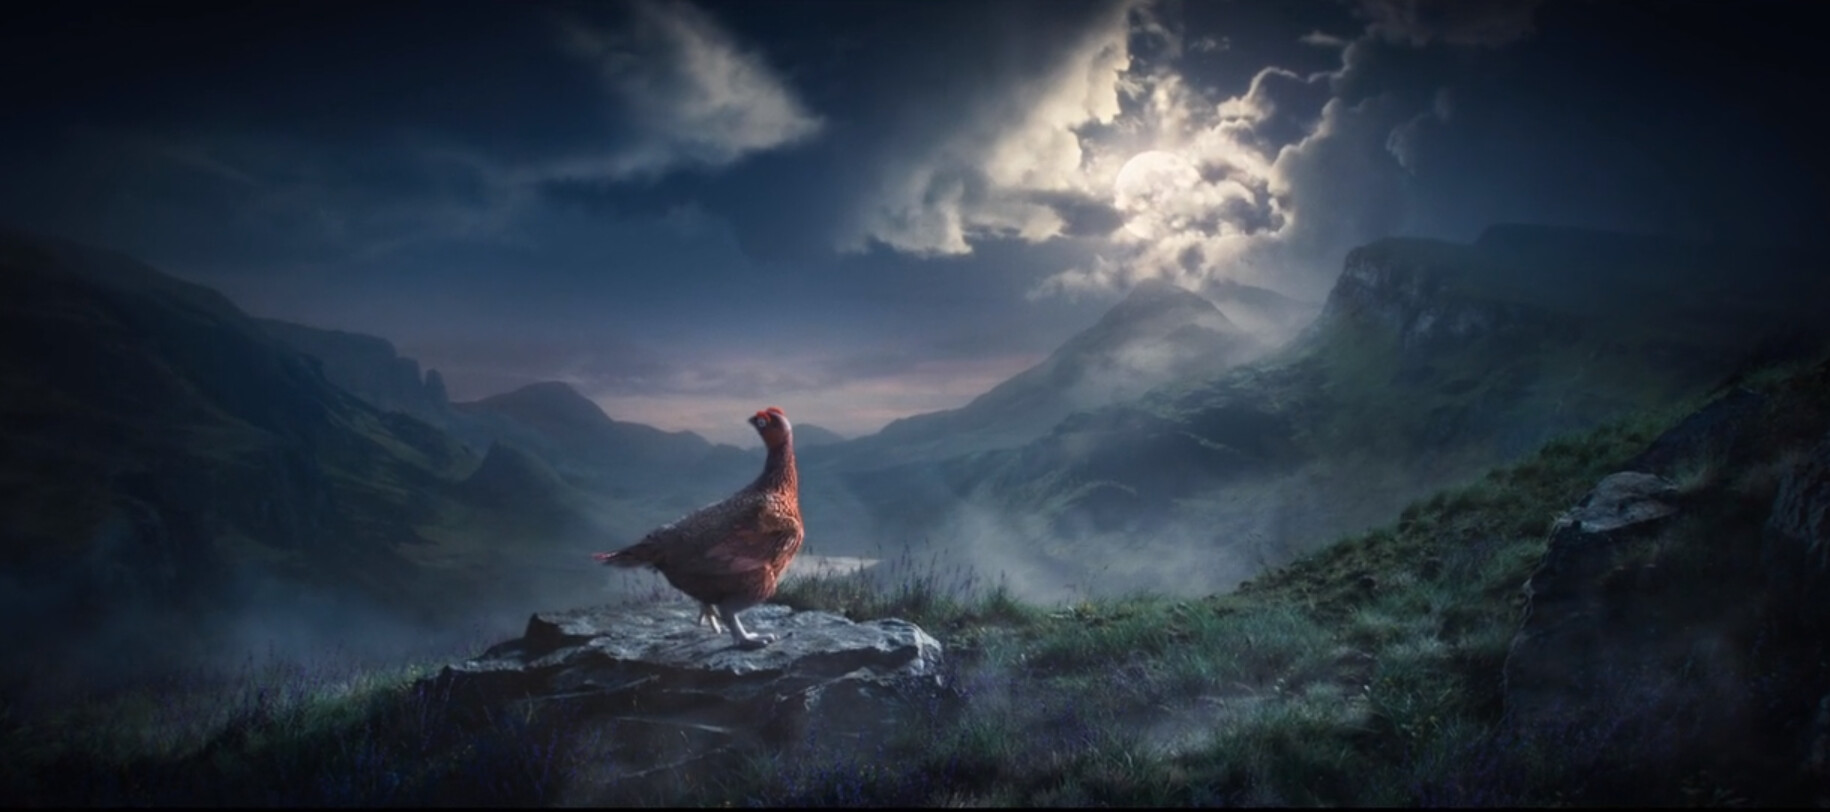 On this project, I was responsible for uprezing Axis' model and textures of the Grouse.